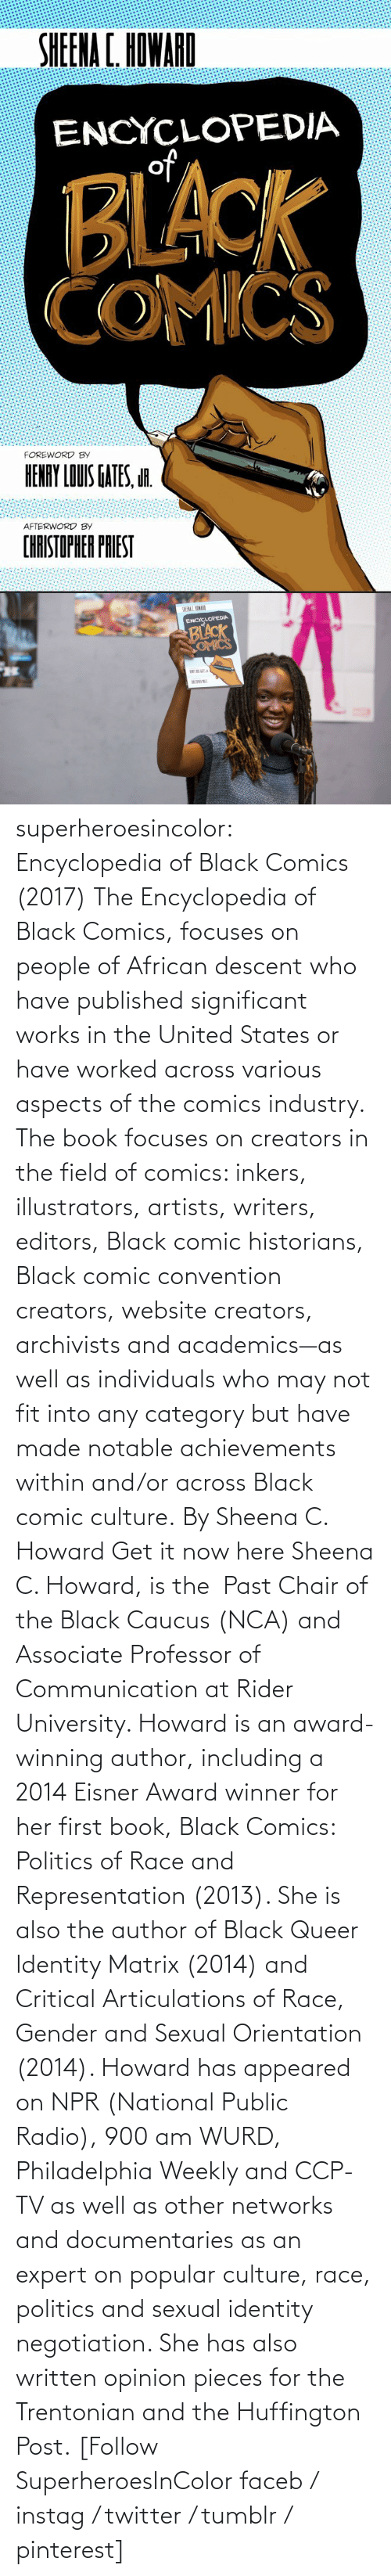 university: superheroesincolor: Encyclopedia of Black Comics (2017) The Encyclopedia of Black Comics, focuses on people of African descent who have published significant works in the United States or have worked across various aspects of the comics industry.  The book focuses on creators in the field of comics: inkers, illustrators, artists, writers, editors, Black comic historians, Black comic convention creators, website creators, archivists and academics—as well as individuals who may not fit into any category but have made notable achievements within and/or across Black comic culture. By Sheena C. Howard Get it now here  Sheena C. Howard, is the  Past Chair of the Black Caucus (NCA) and Associate Professor of Communication at Rider University. Howard is an award-winning author, including a 2014 Eisner Award winner for her first book, Black Comics: Politics of Race and Representation (2013). She is also the author of Black Queer Identity Matrix (2014) and Critical Articulations of Race, Gender and Sexual Orientation (2014). Howard has appeared on NPR (National Public Radio), 900 am WURD, Philadelphia Weekly and CCP-TV as well as other networks and documentaries as an expert on popular culture, race, politics and sexual identity negotiation. She has also written opinion pieces for the Trentonian and the Huffington Post.   [Follow SuperheroesInColor faceb / instag / twitter / tumblr / pinterest]